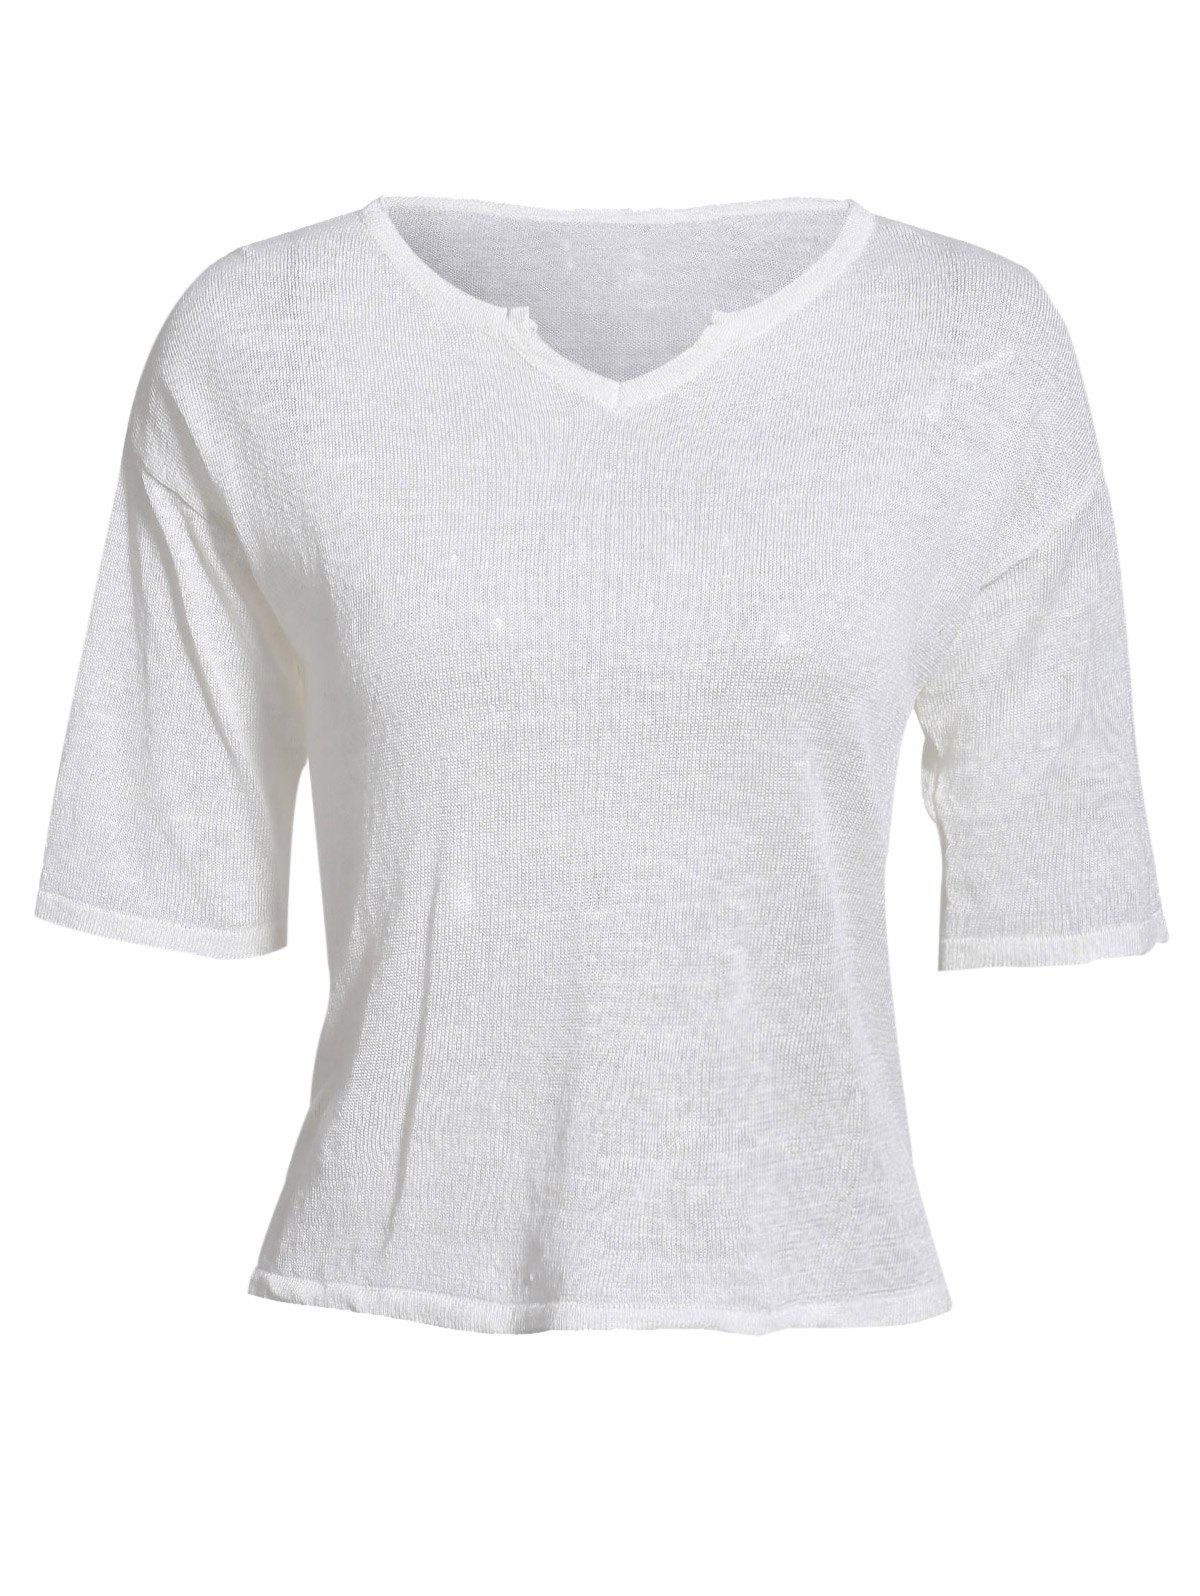 Women's Casual Style Notch Collar Half Sleeve Solid Color T-Shirt